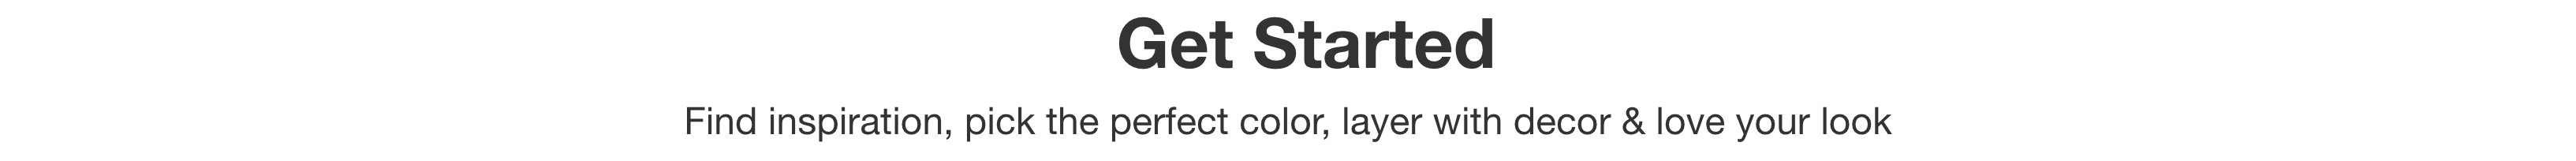 Get Started - Find inspiration, pick the perfect color, layer with decor and love your look